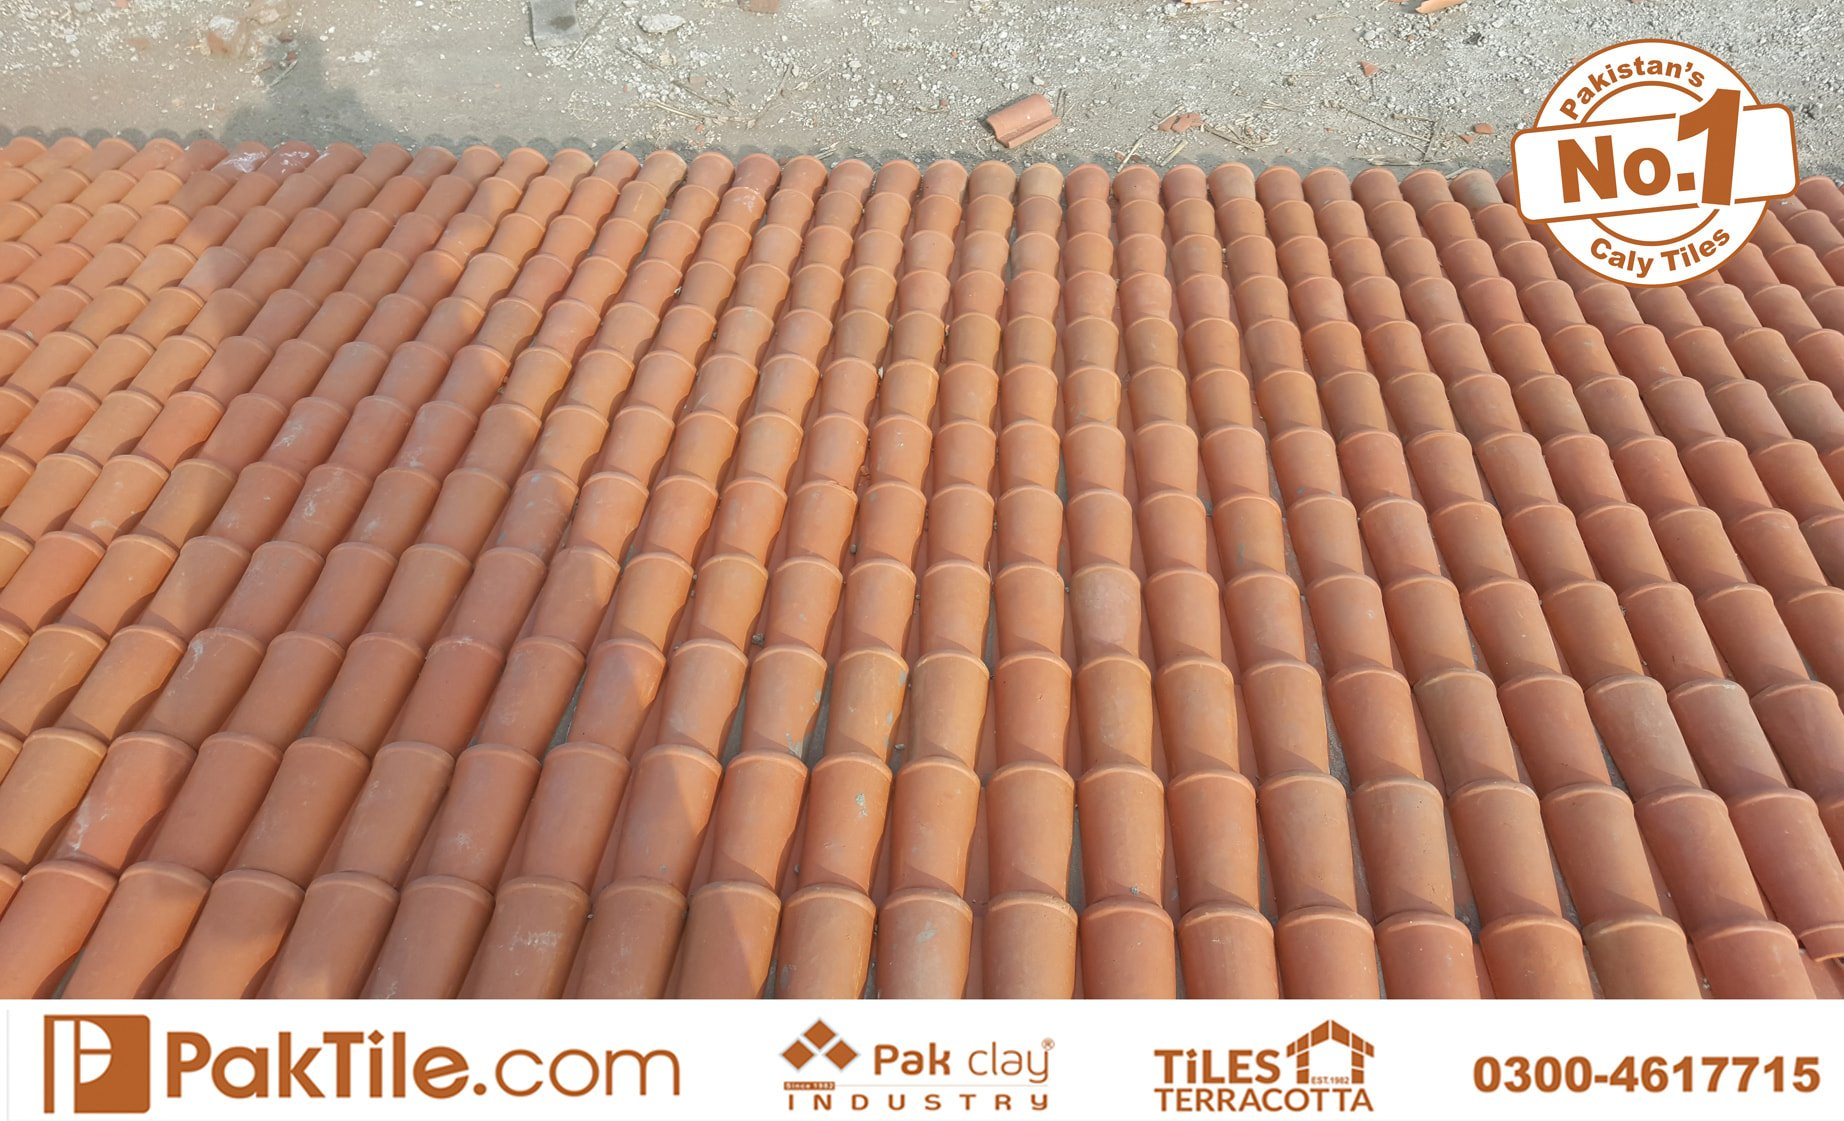 1 Pak Clay Terracotta Roofing Khaprail Tiles Rates in Karachi Images.